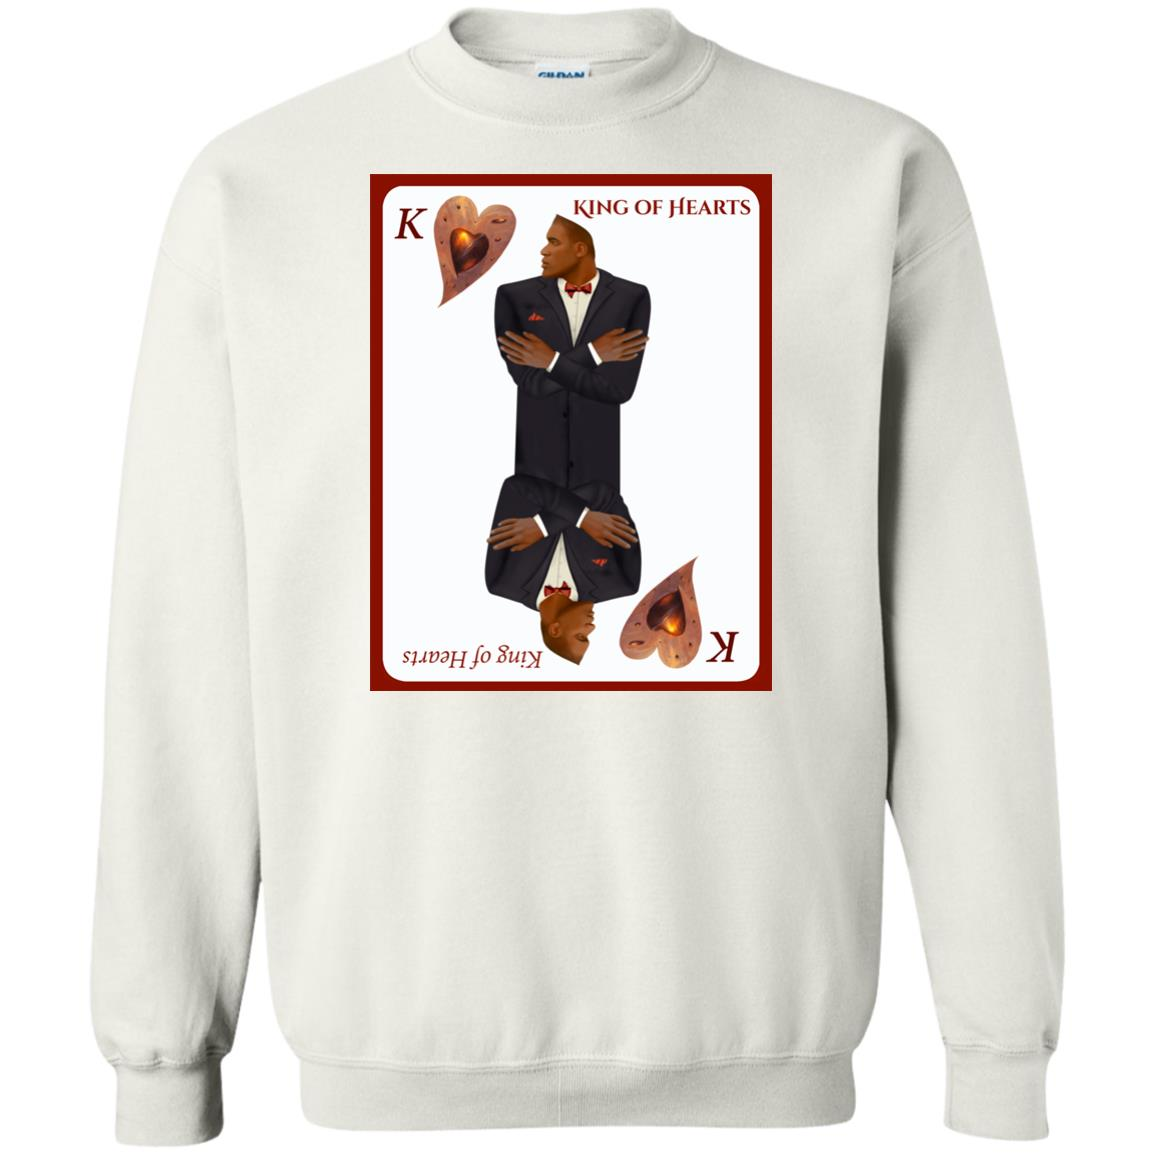 king of hearts - Men's Crew Neck Sweatshirt